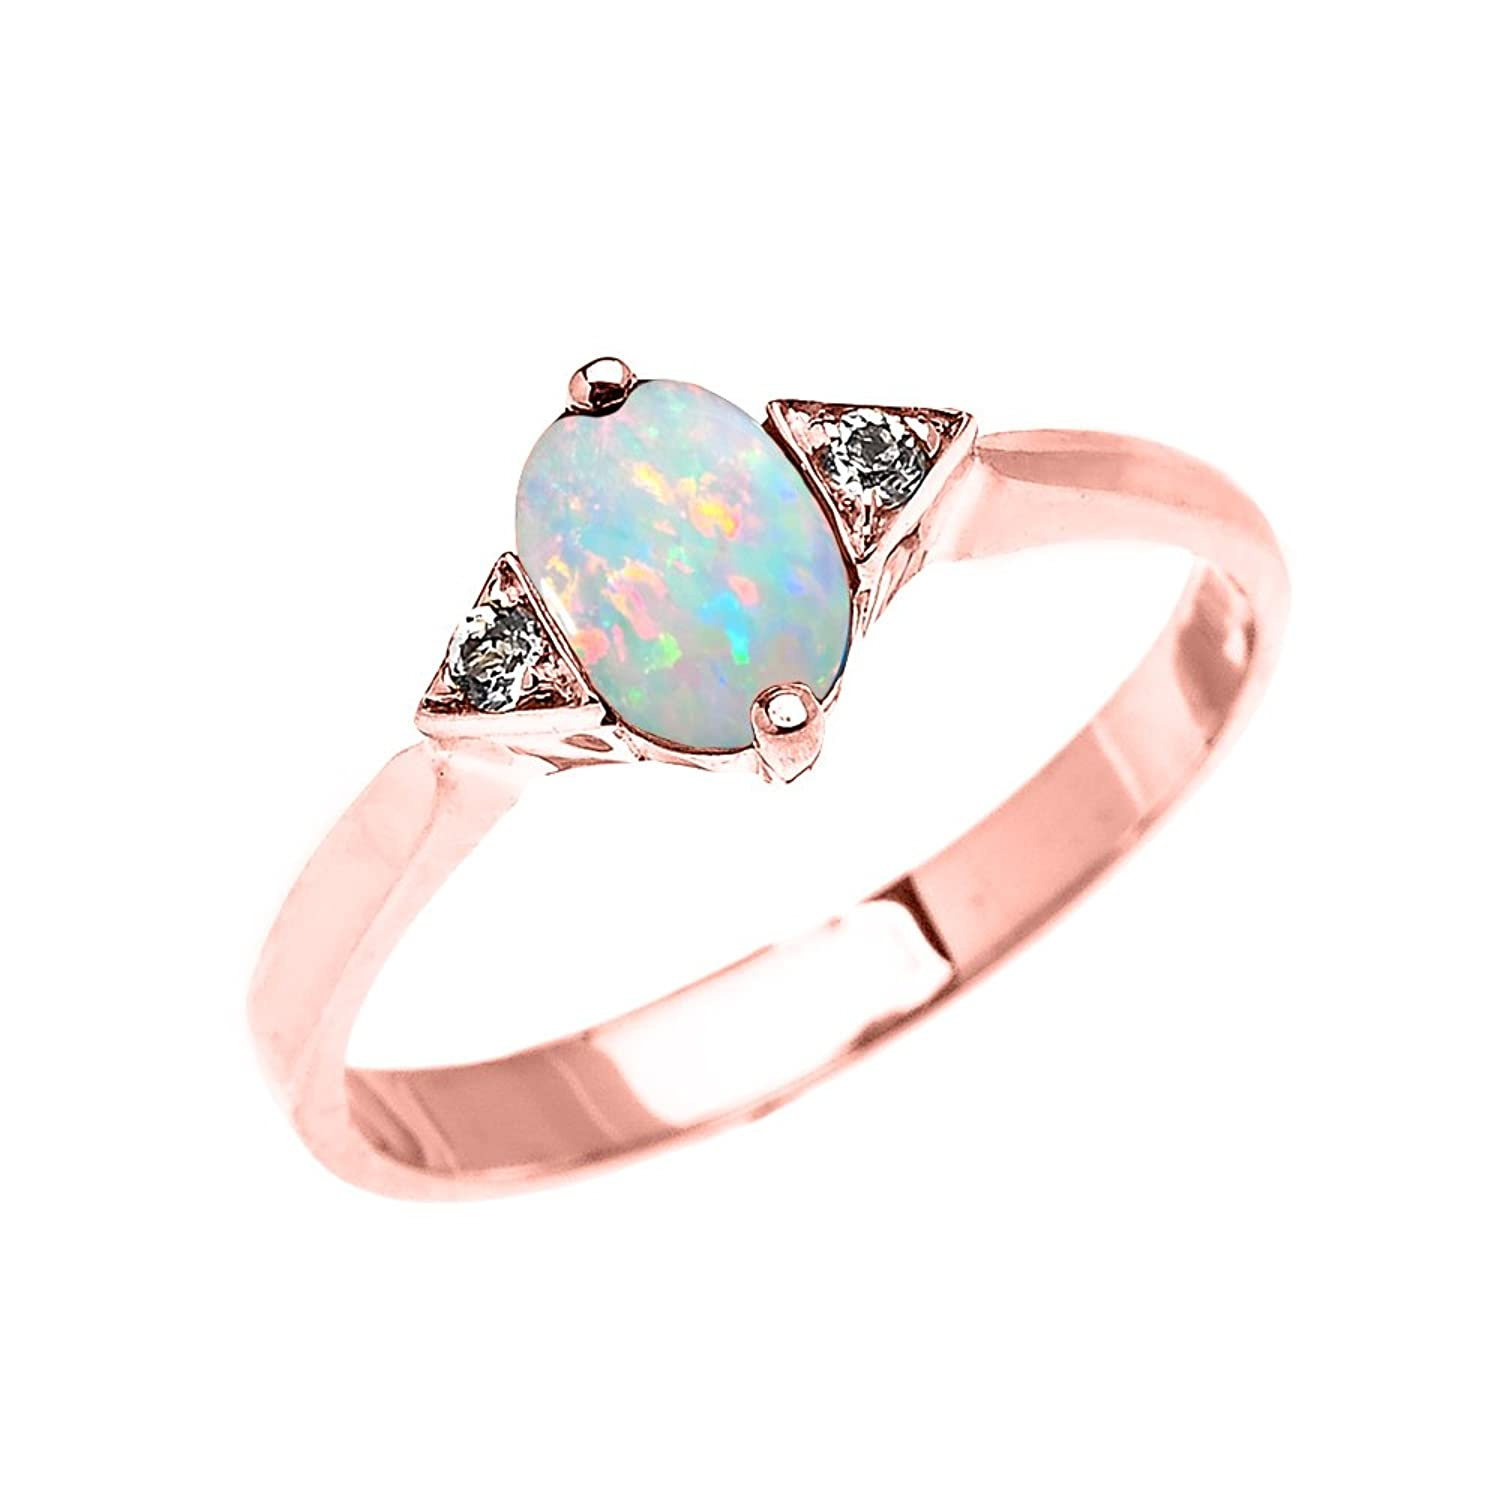 14k Rose Gold Solitaire White Topaz Proposal/Engagement Ring